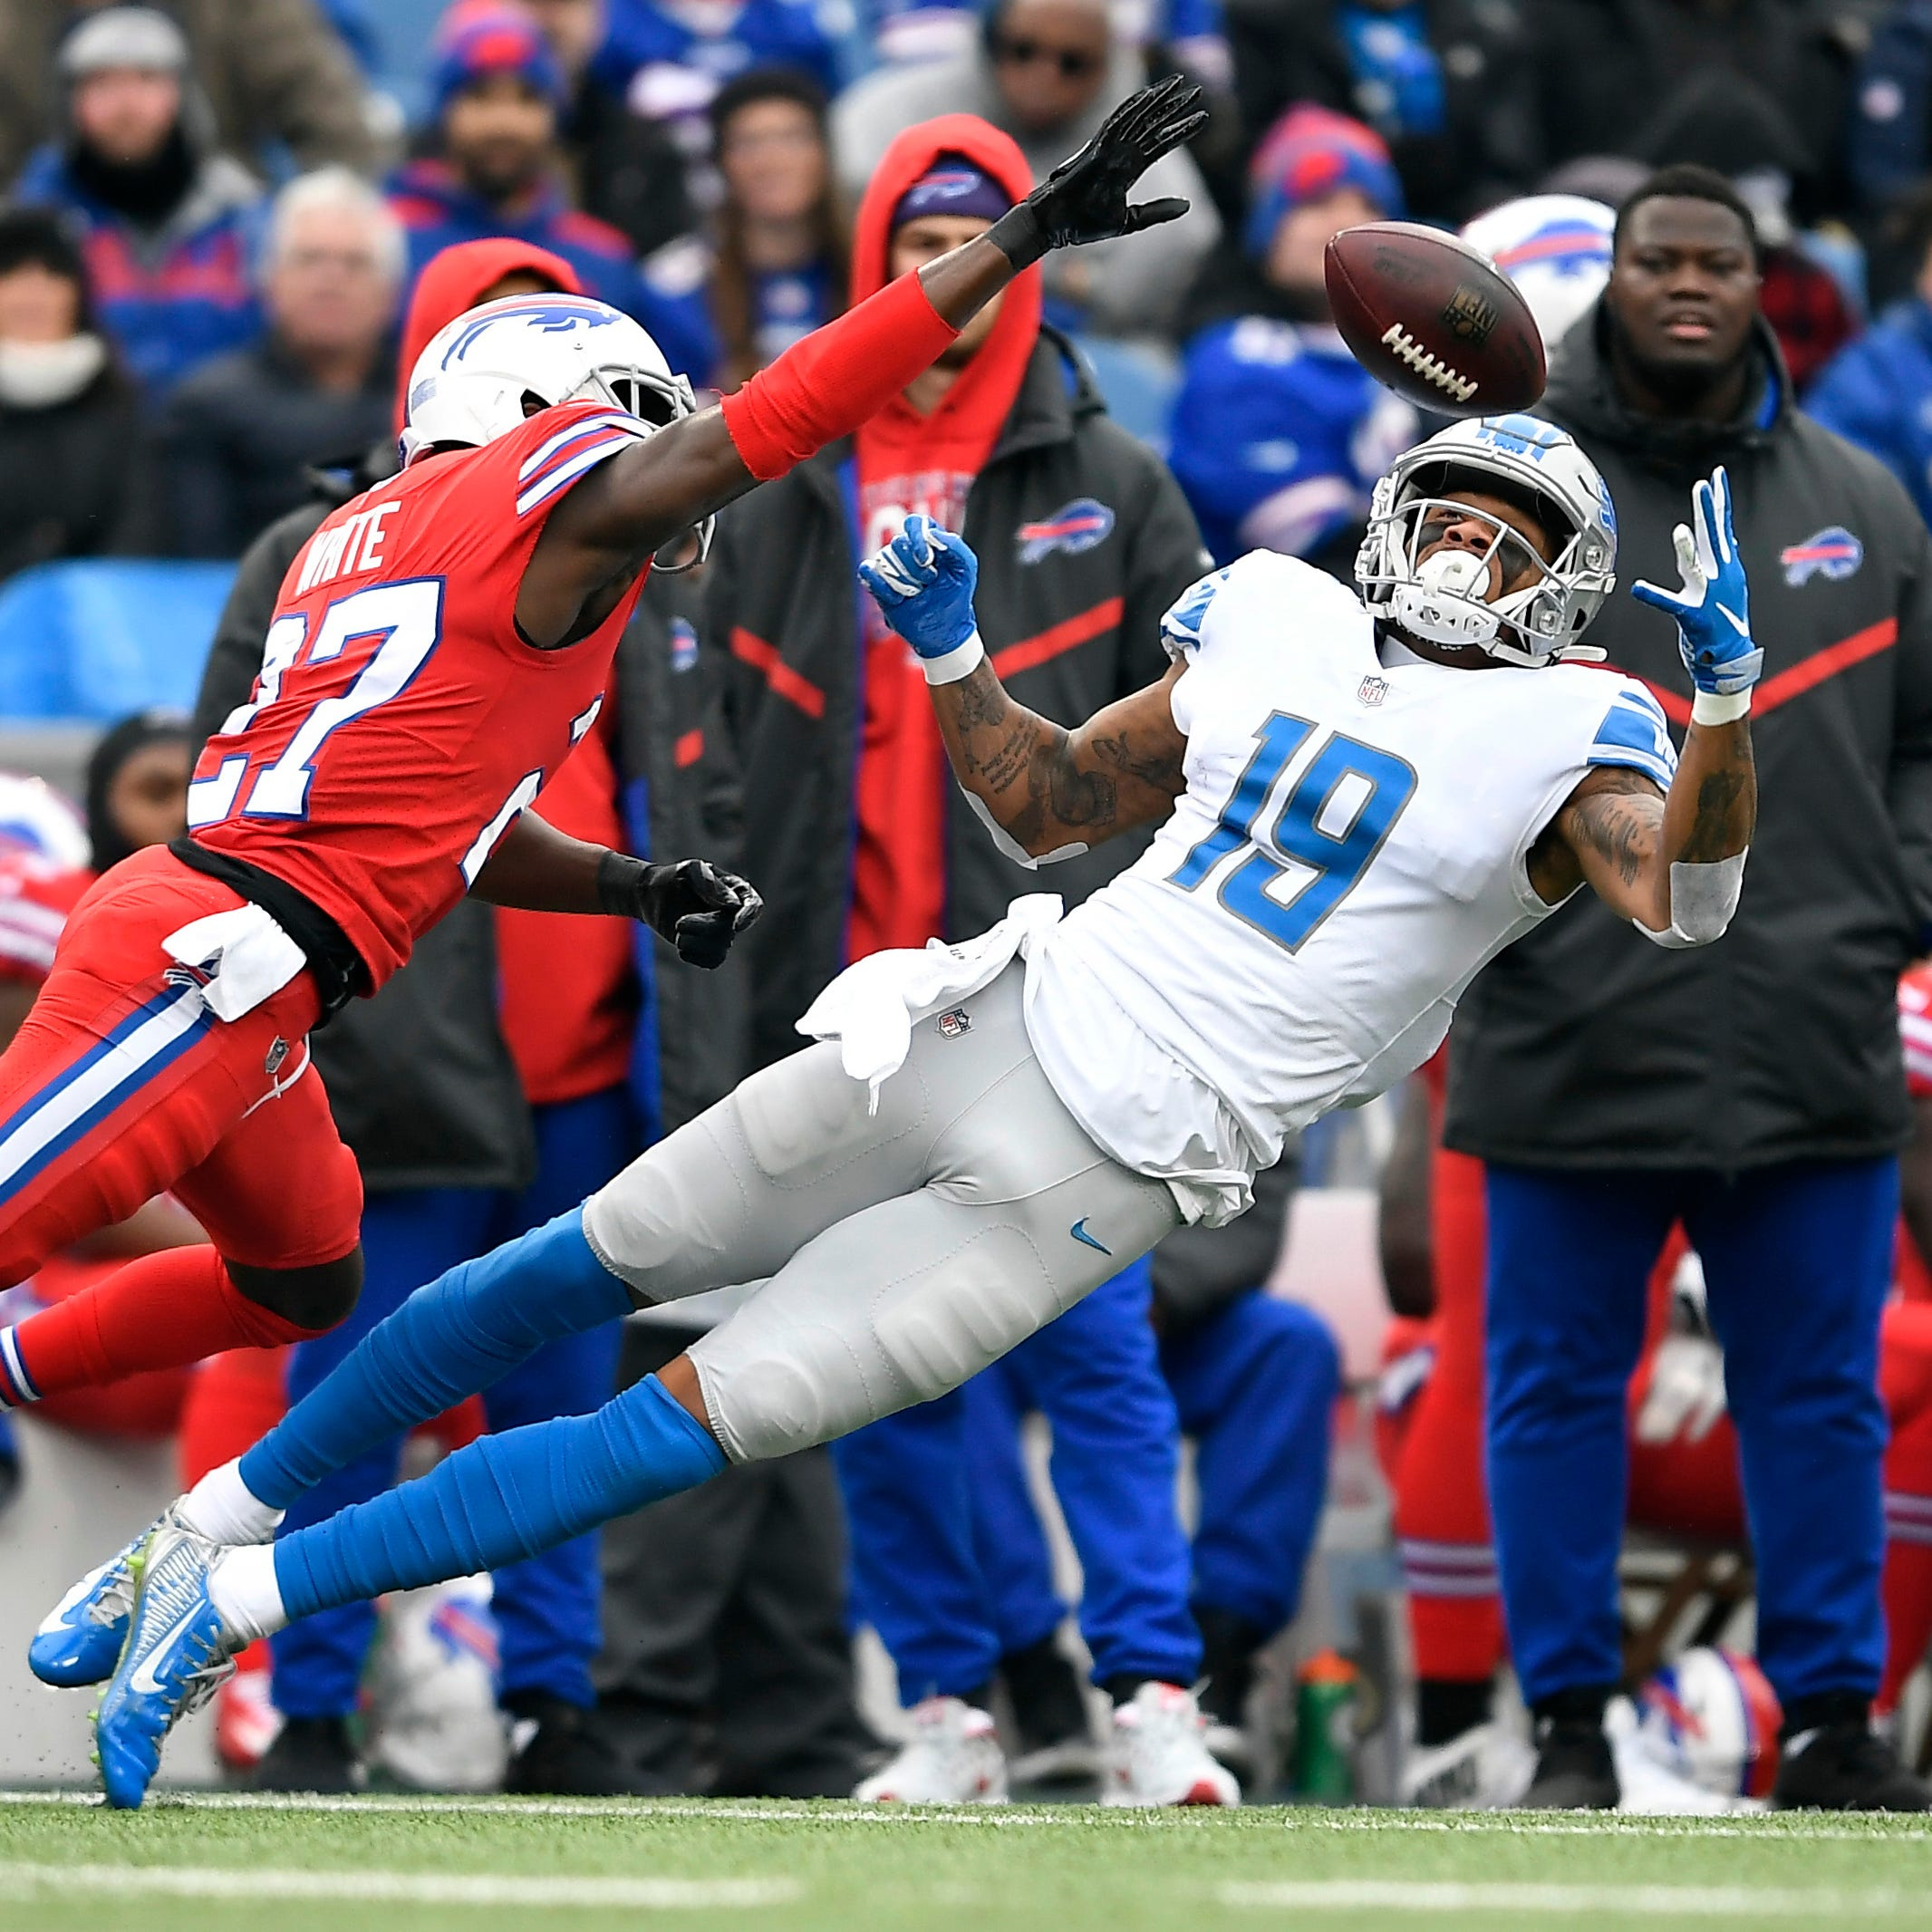 Lions WR Kenny Golladay having a breakout year: 'Now it's just me'